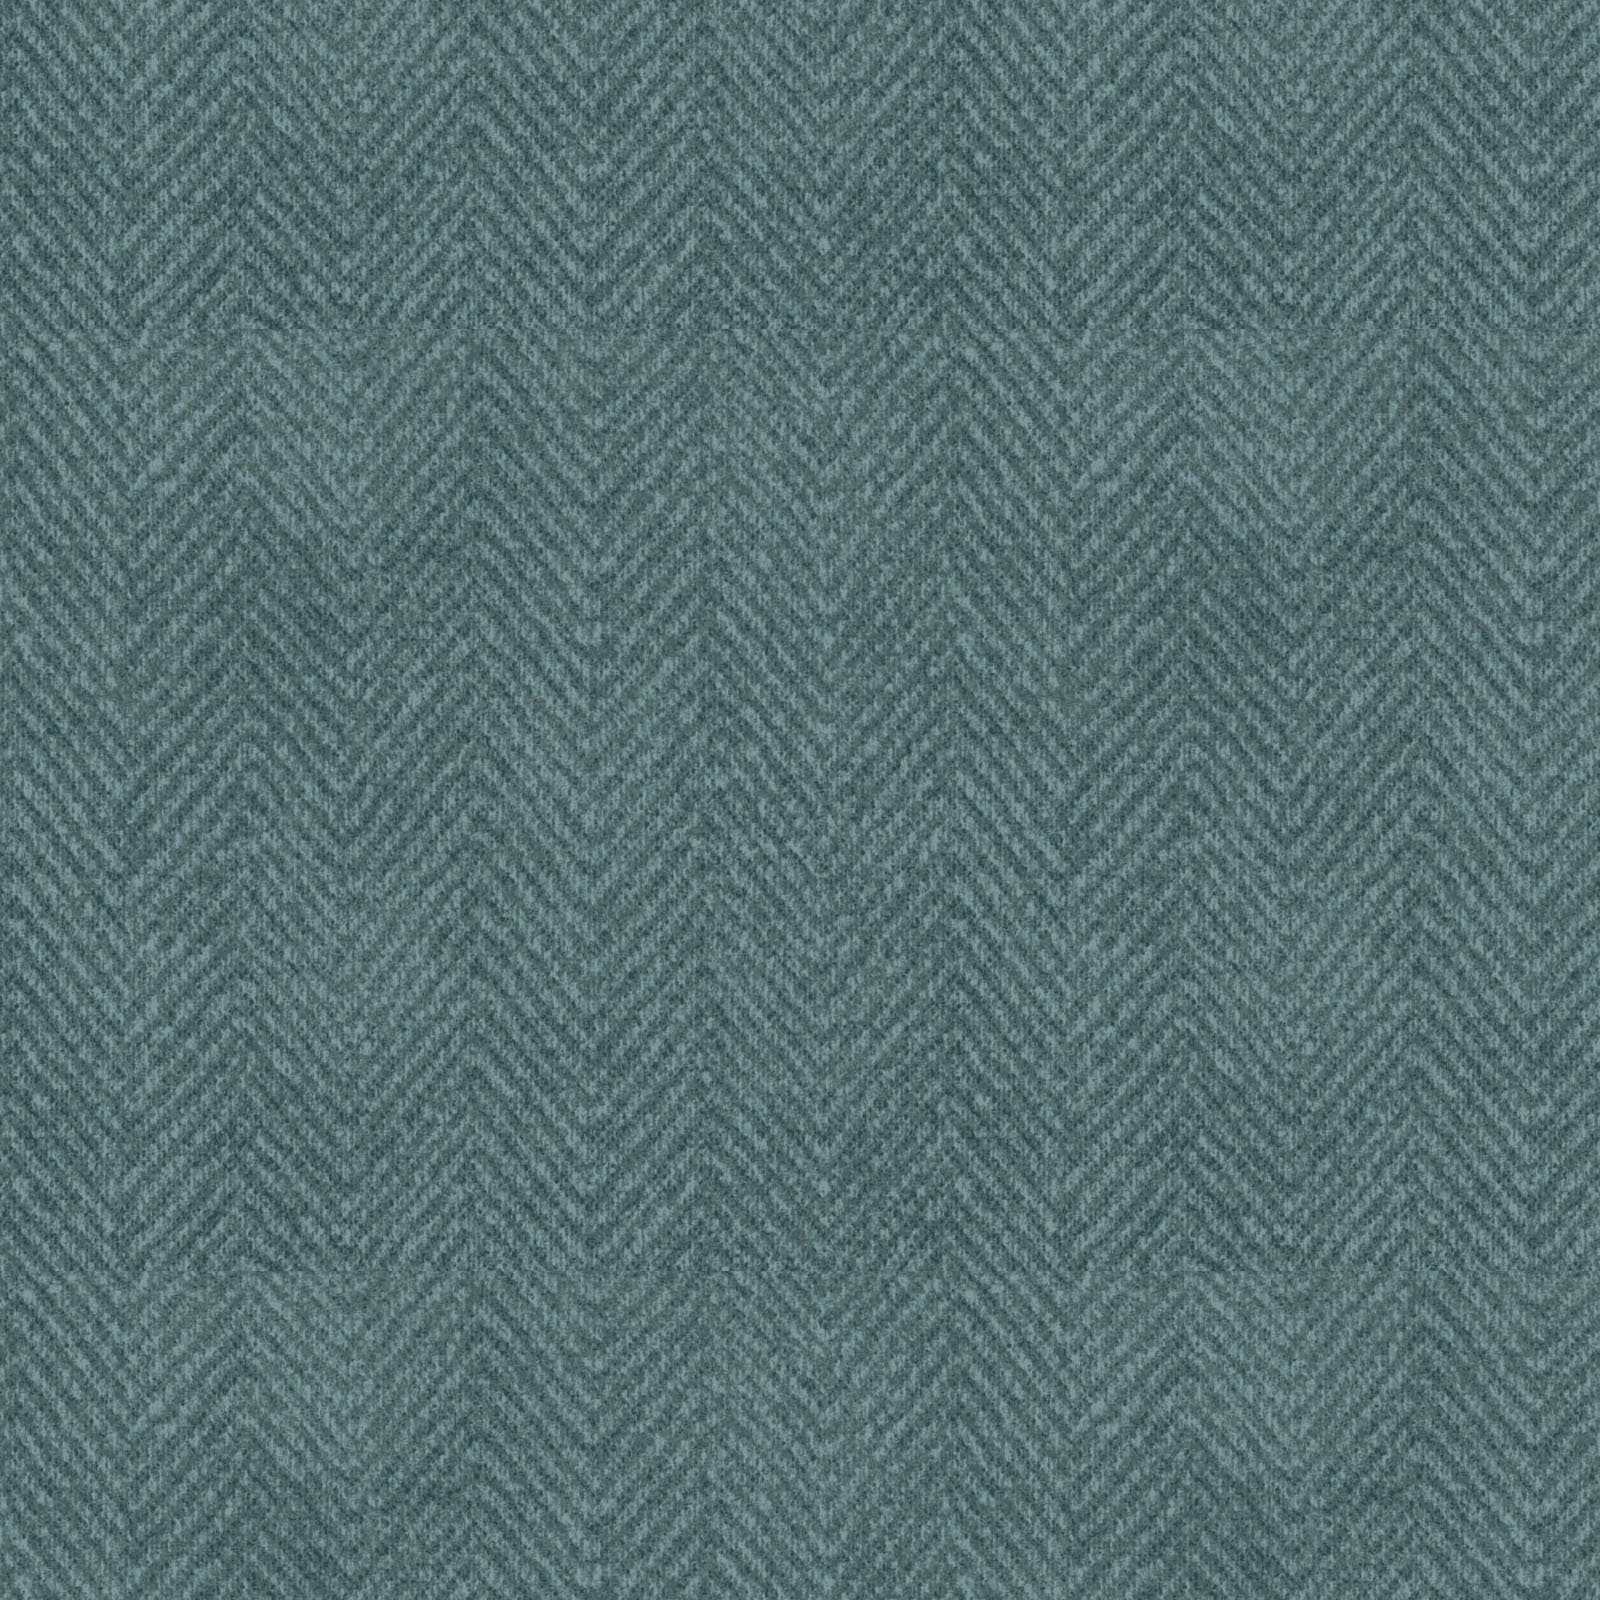 Maywood Studio Woolies Flannel Light Blue Herringbone